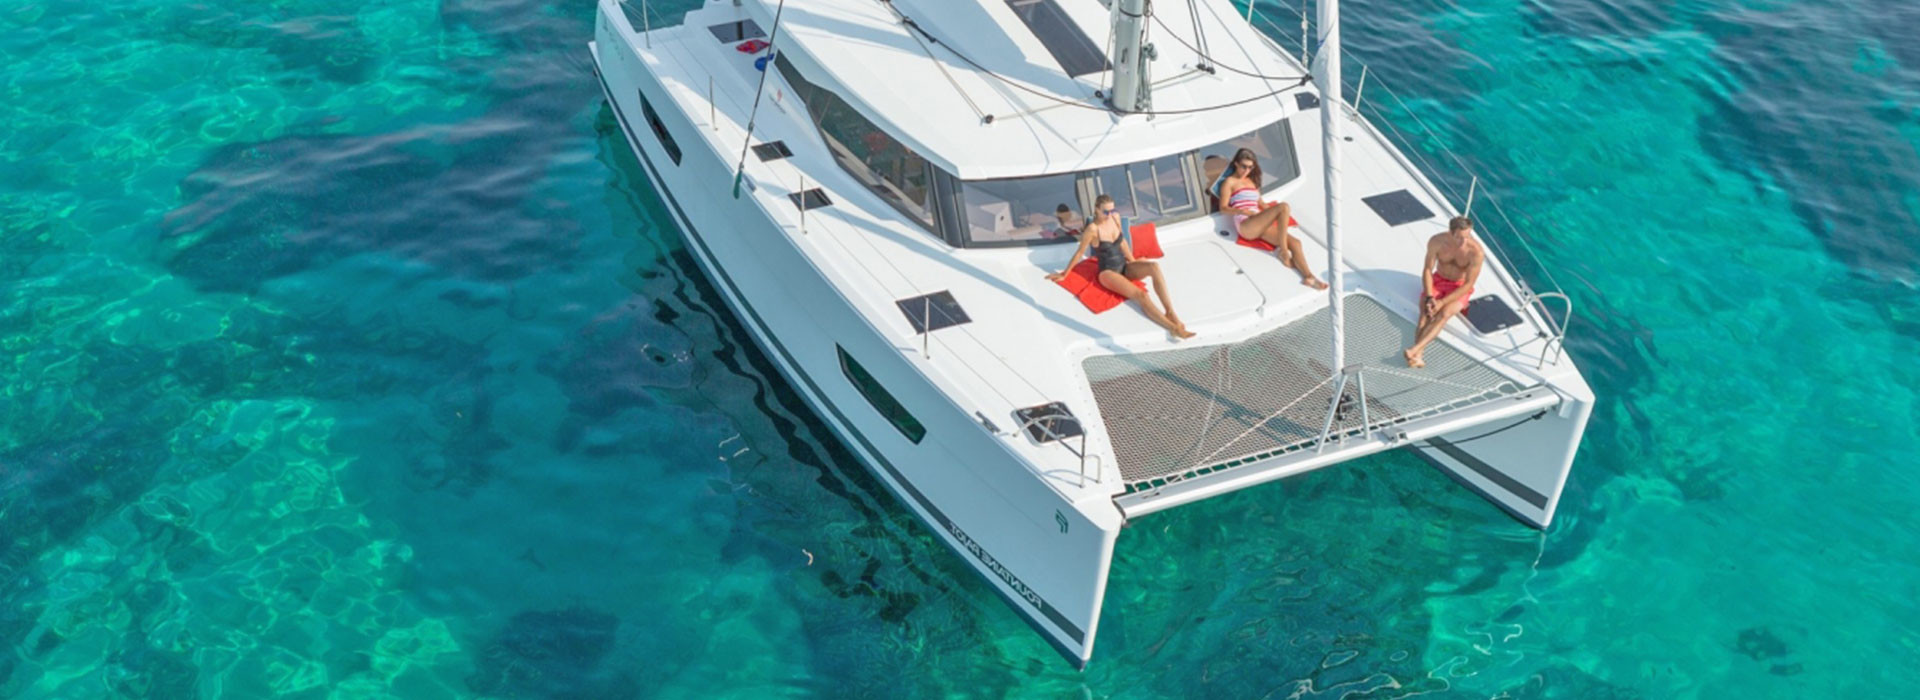 36 TO 60 FEET CATAMARANS AVAILABLE ALL OVER THE WORLD